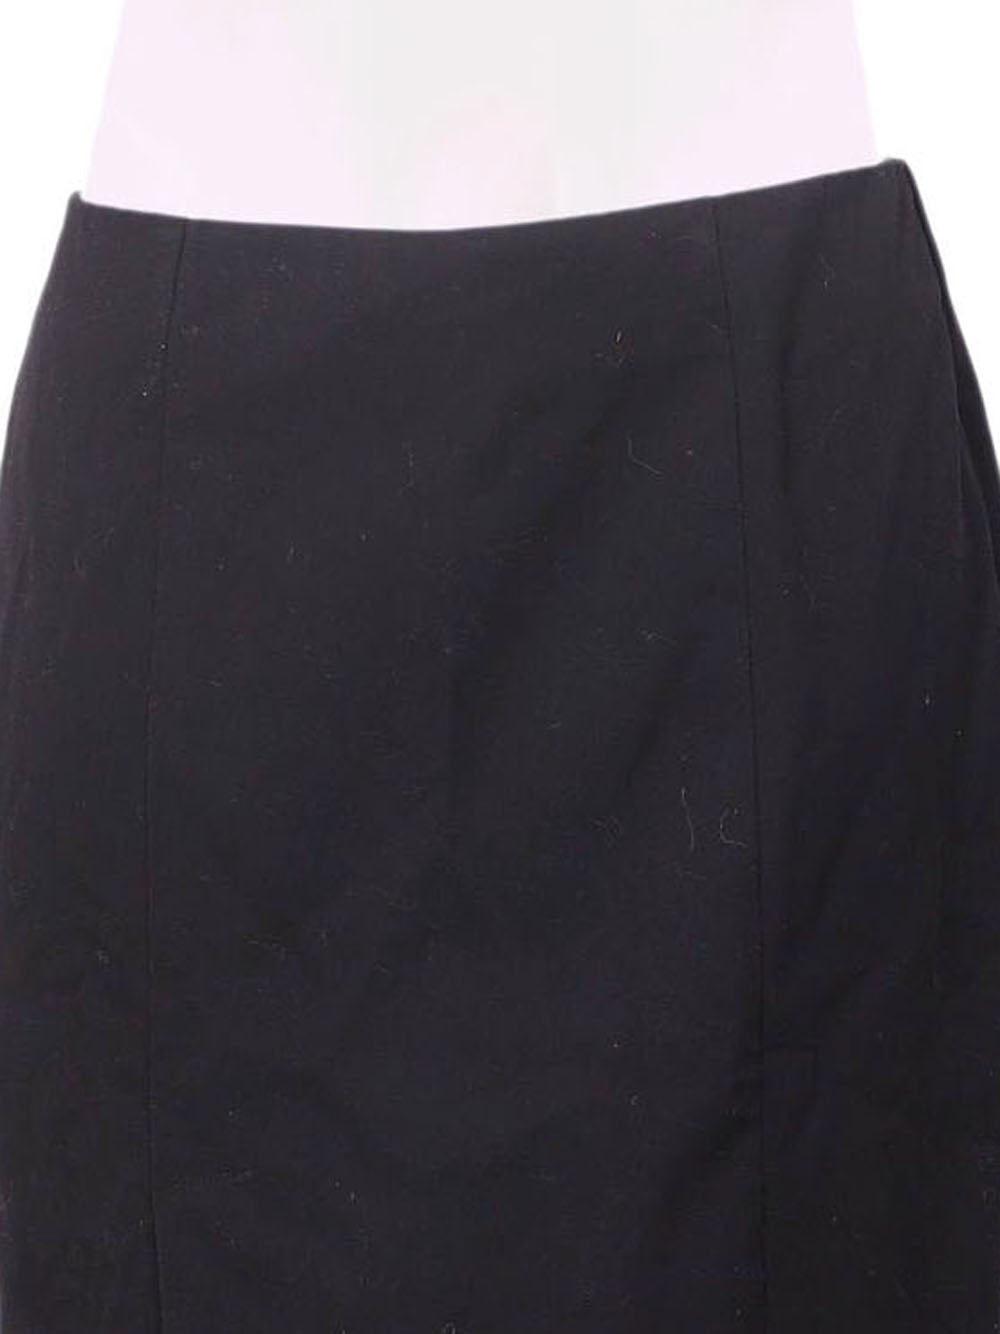 Detail photo of Preloved List Black Woman's skirt - size 10/M